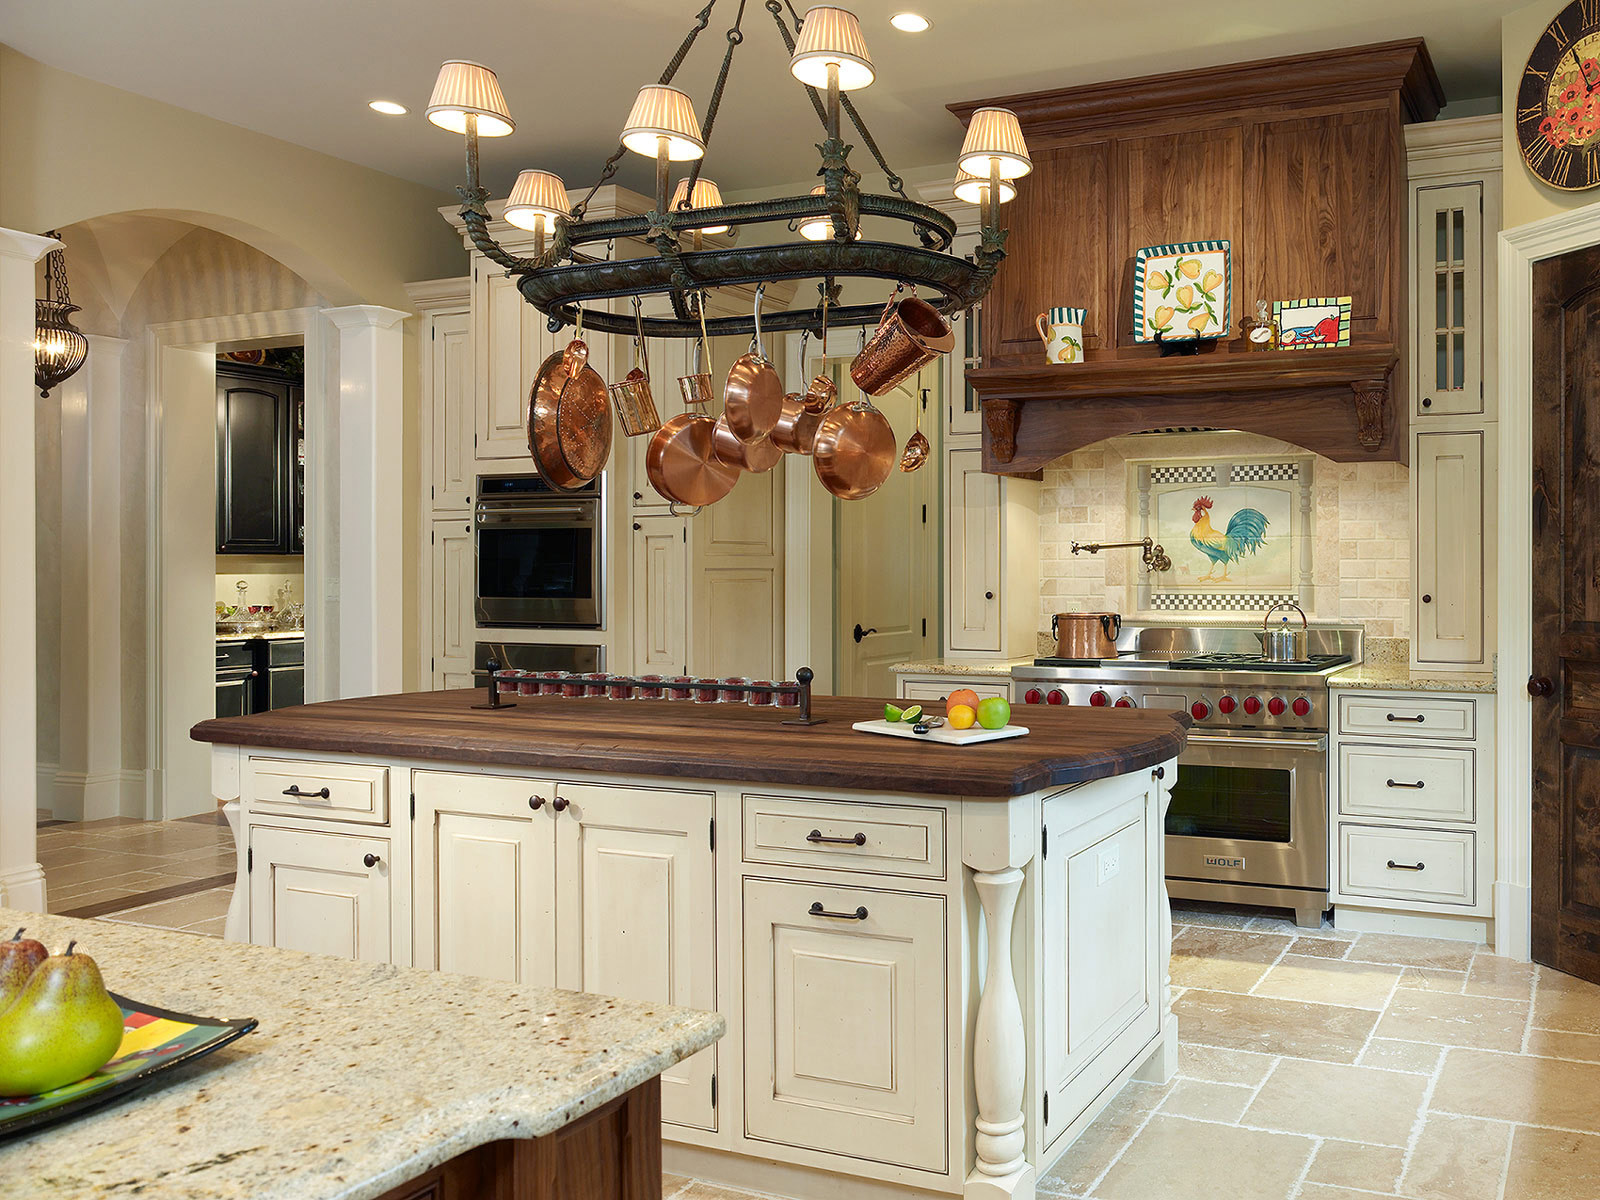 charming kitchen bertch cabinets in white with stove on tile floor plus chandelier for kitchen decor ideas